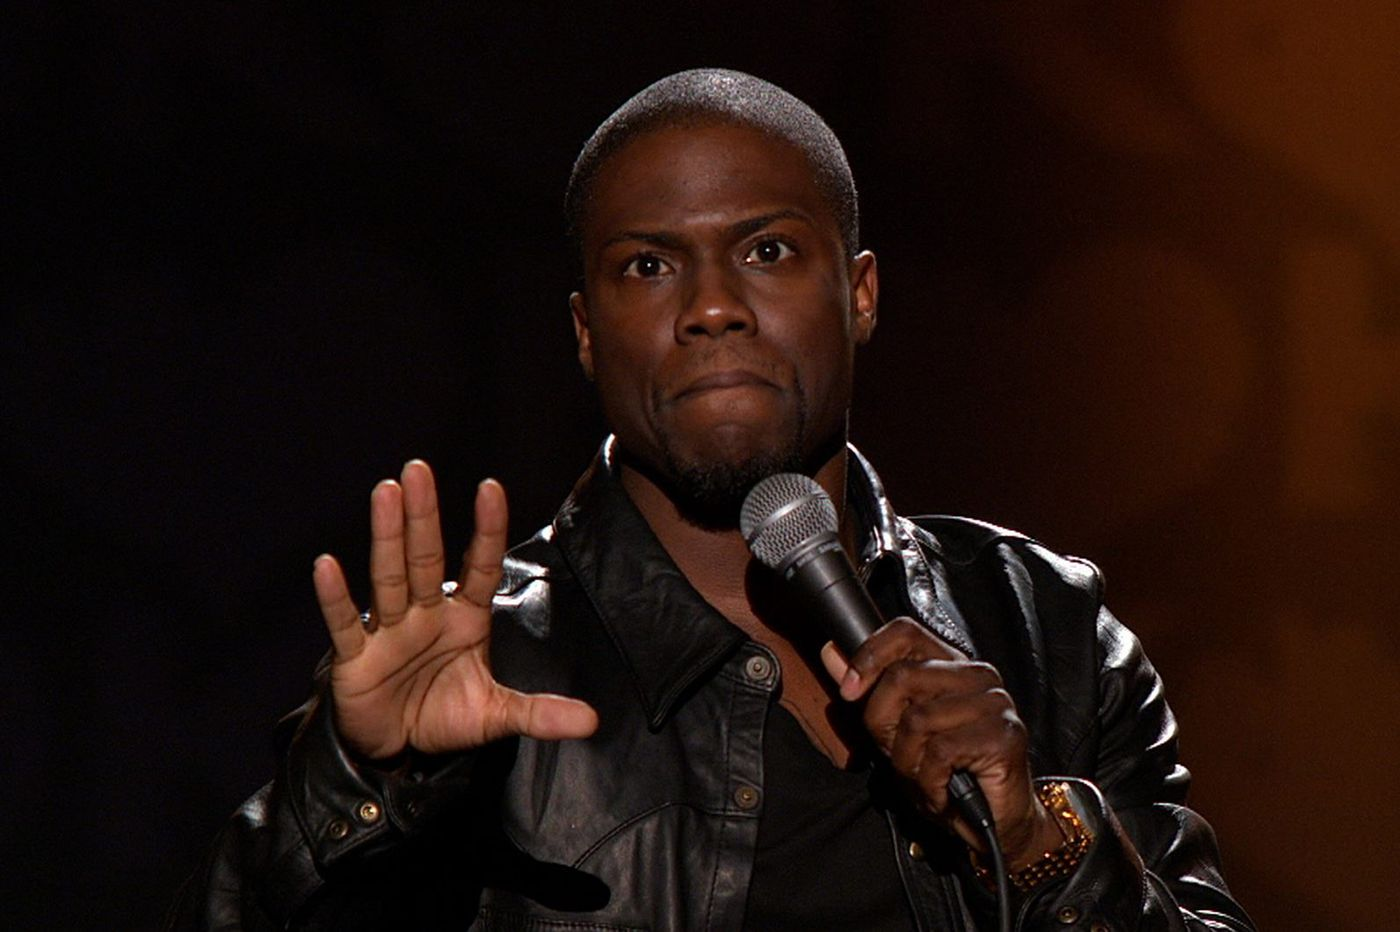 Kevin Hart tells Donald Trump to 'suck it' in MTV VMAs opener